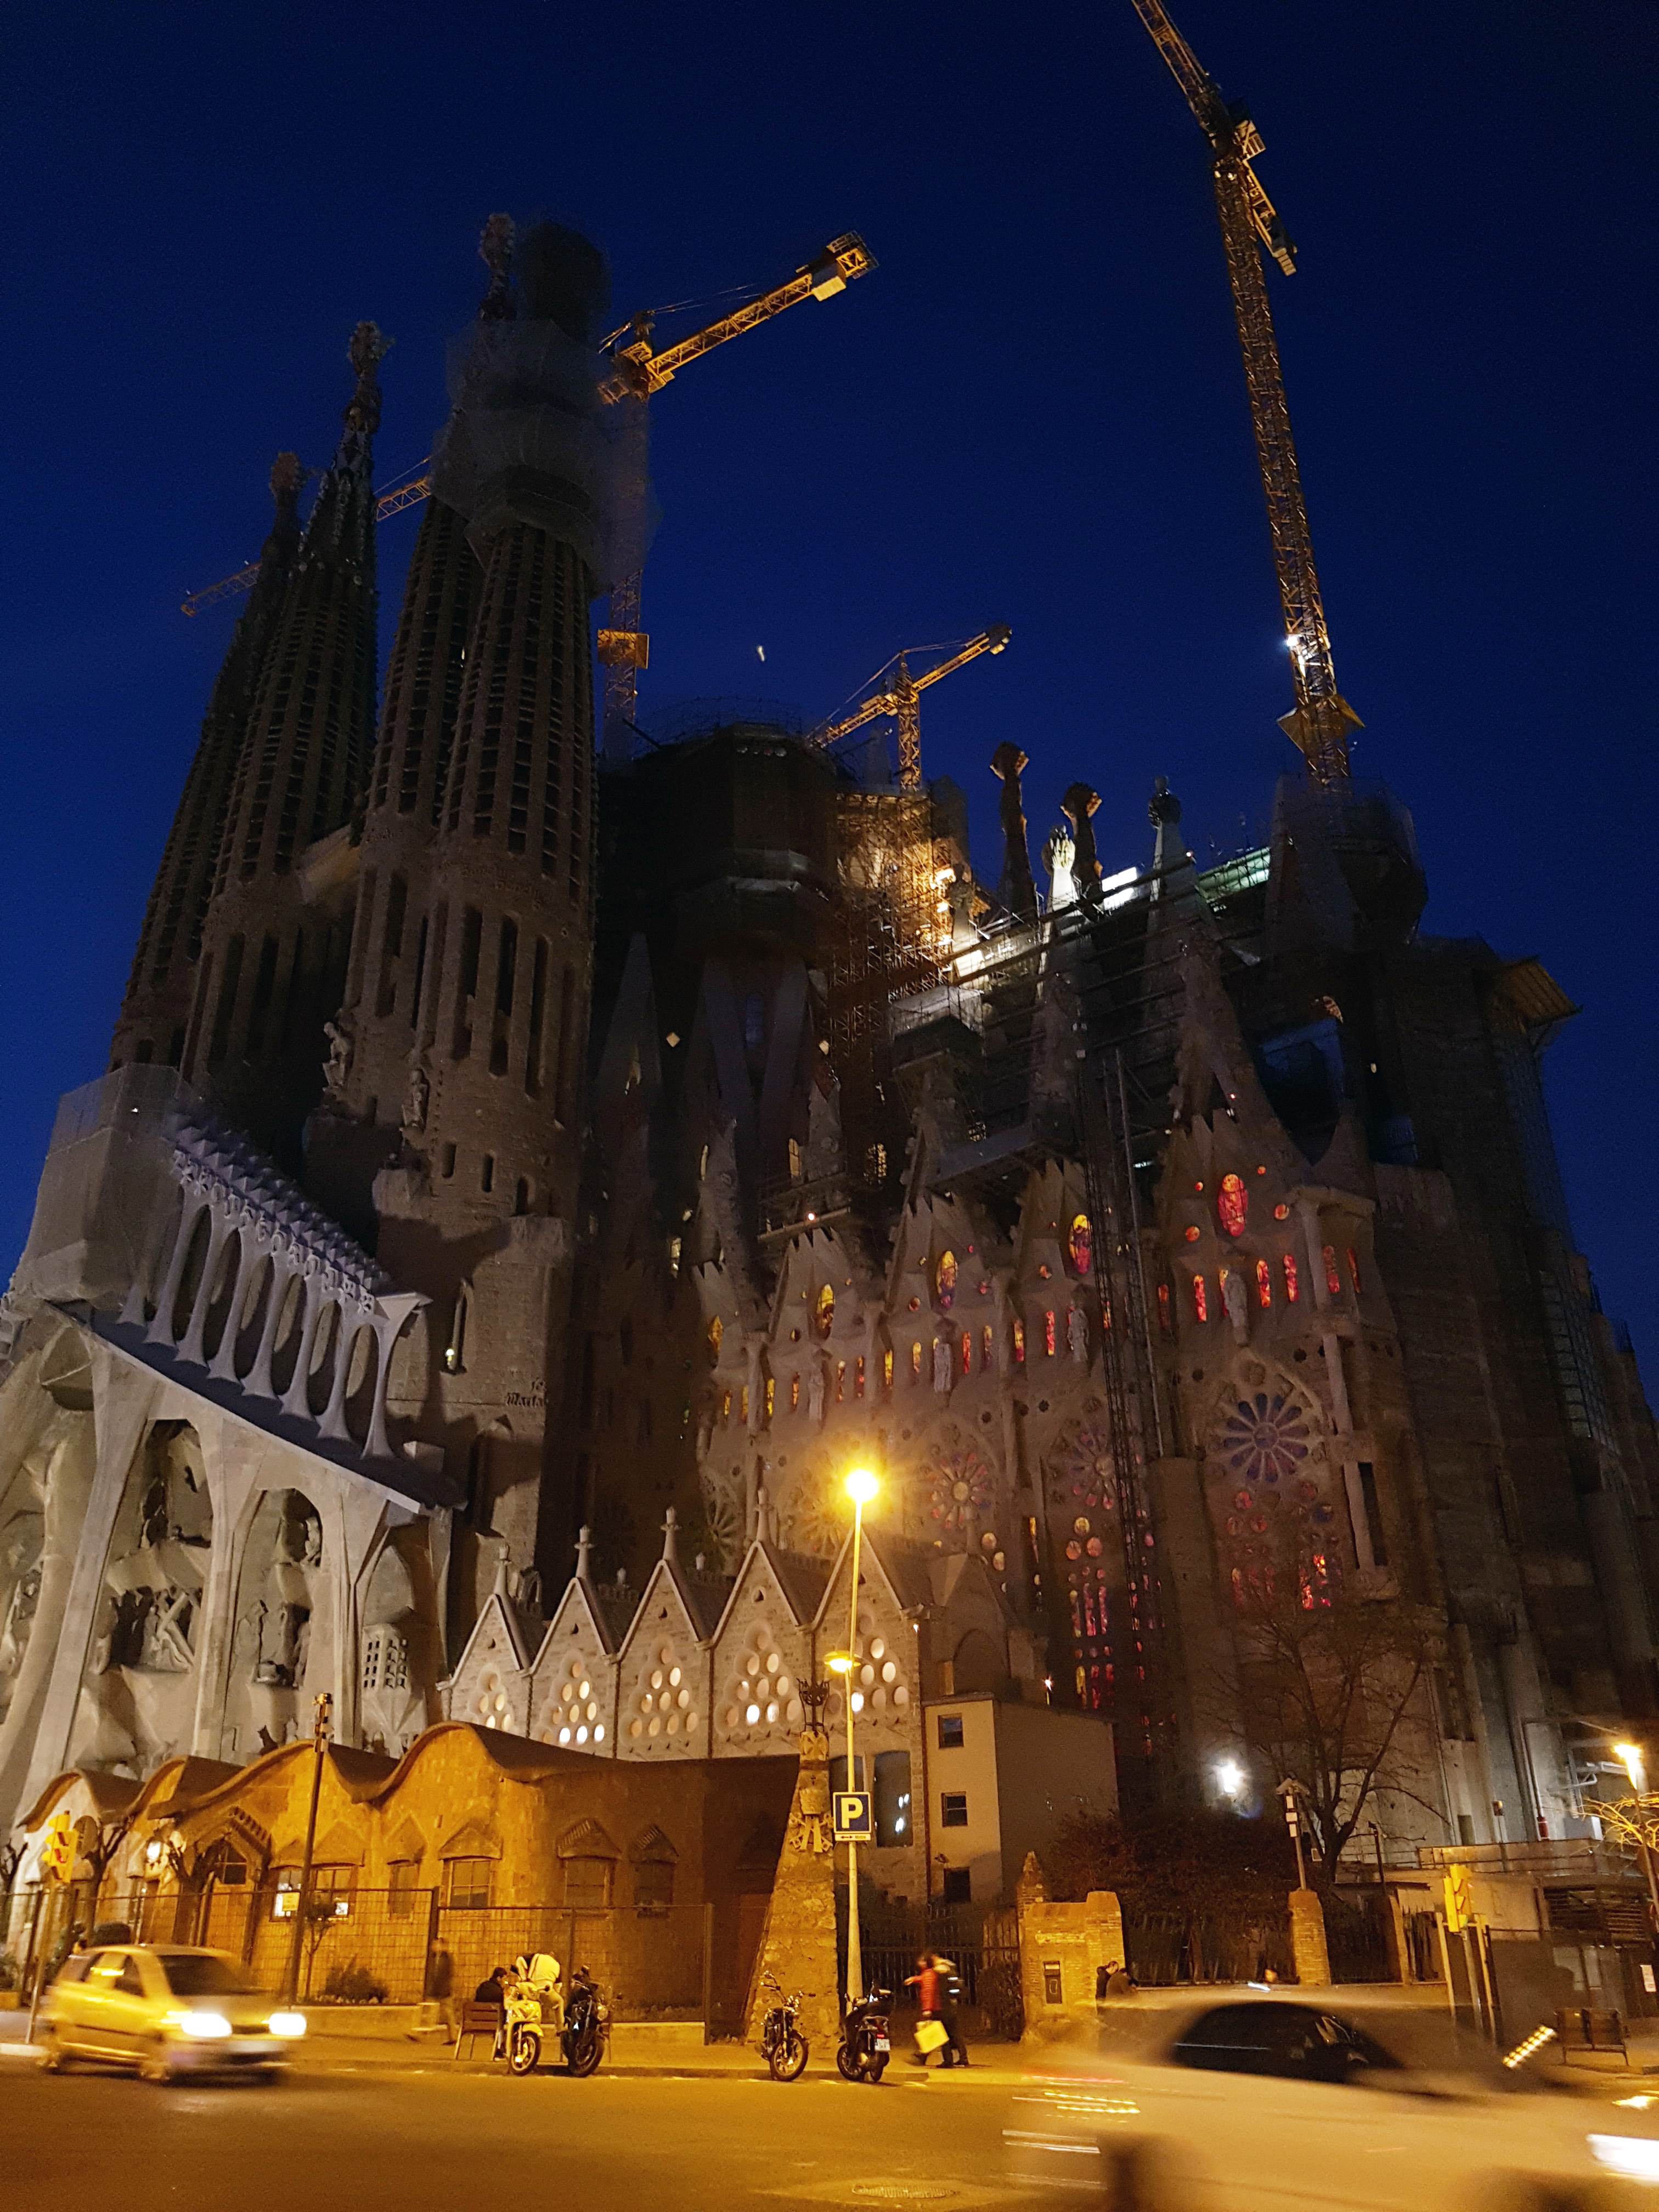 Don't let the night keep you from filling your bucket list with great pictures. Sagrada Familia at dusk 1/15 sec f1.7 ISO 200